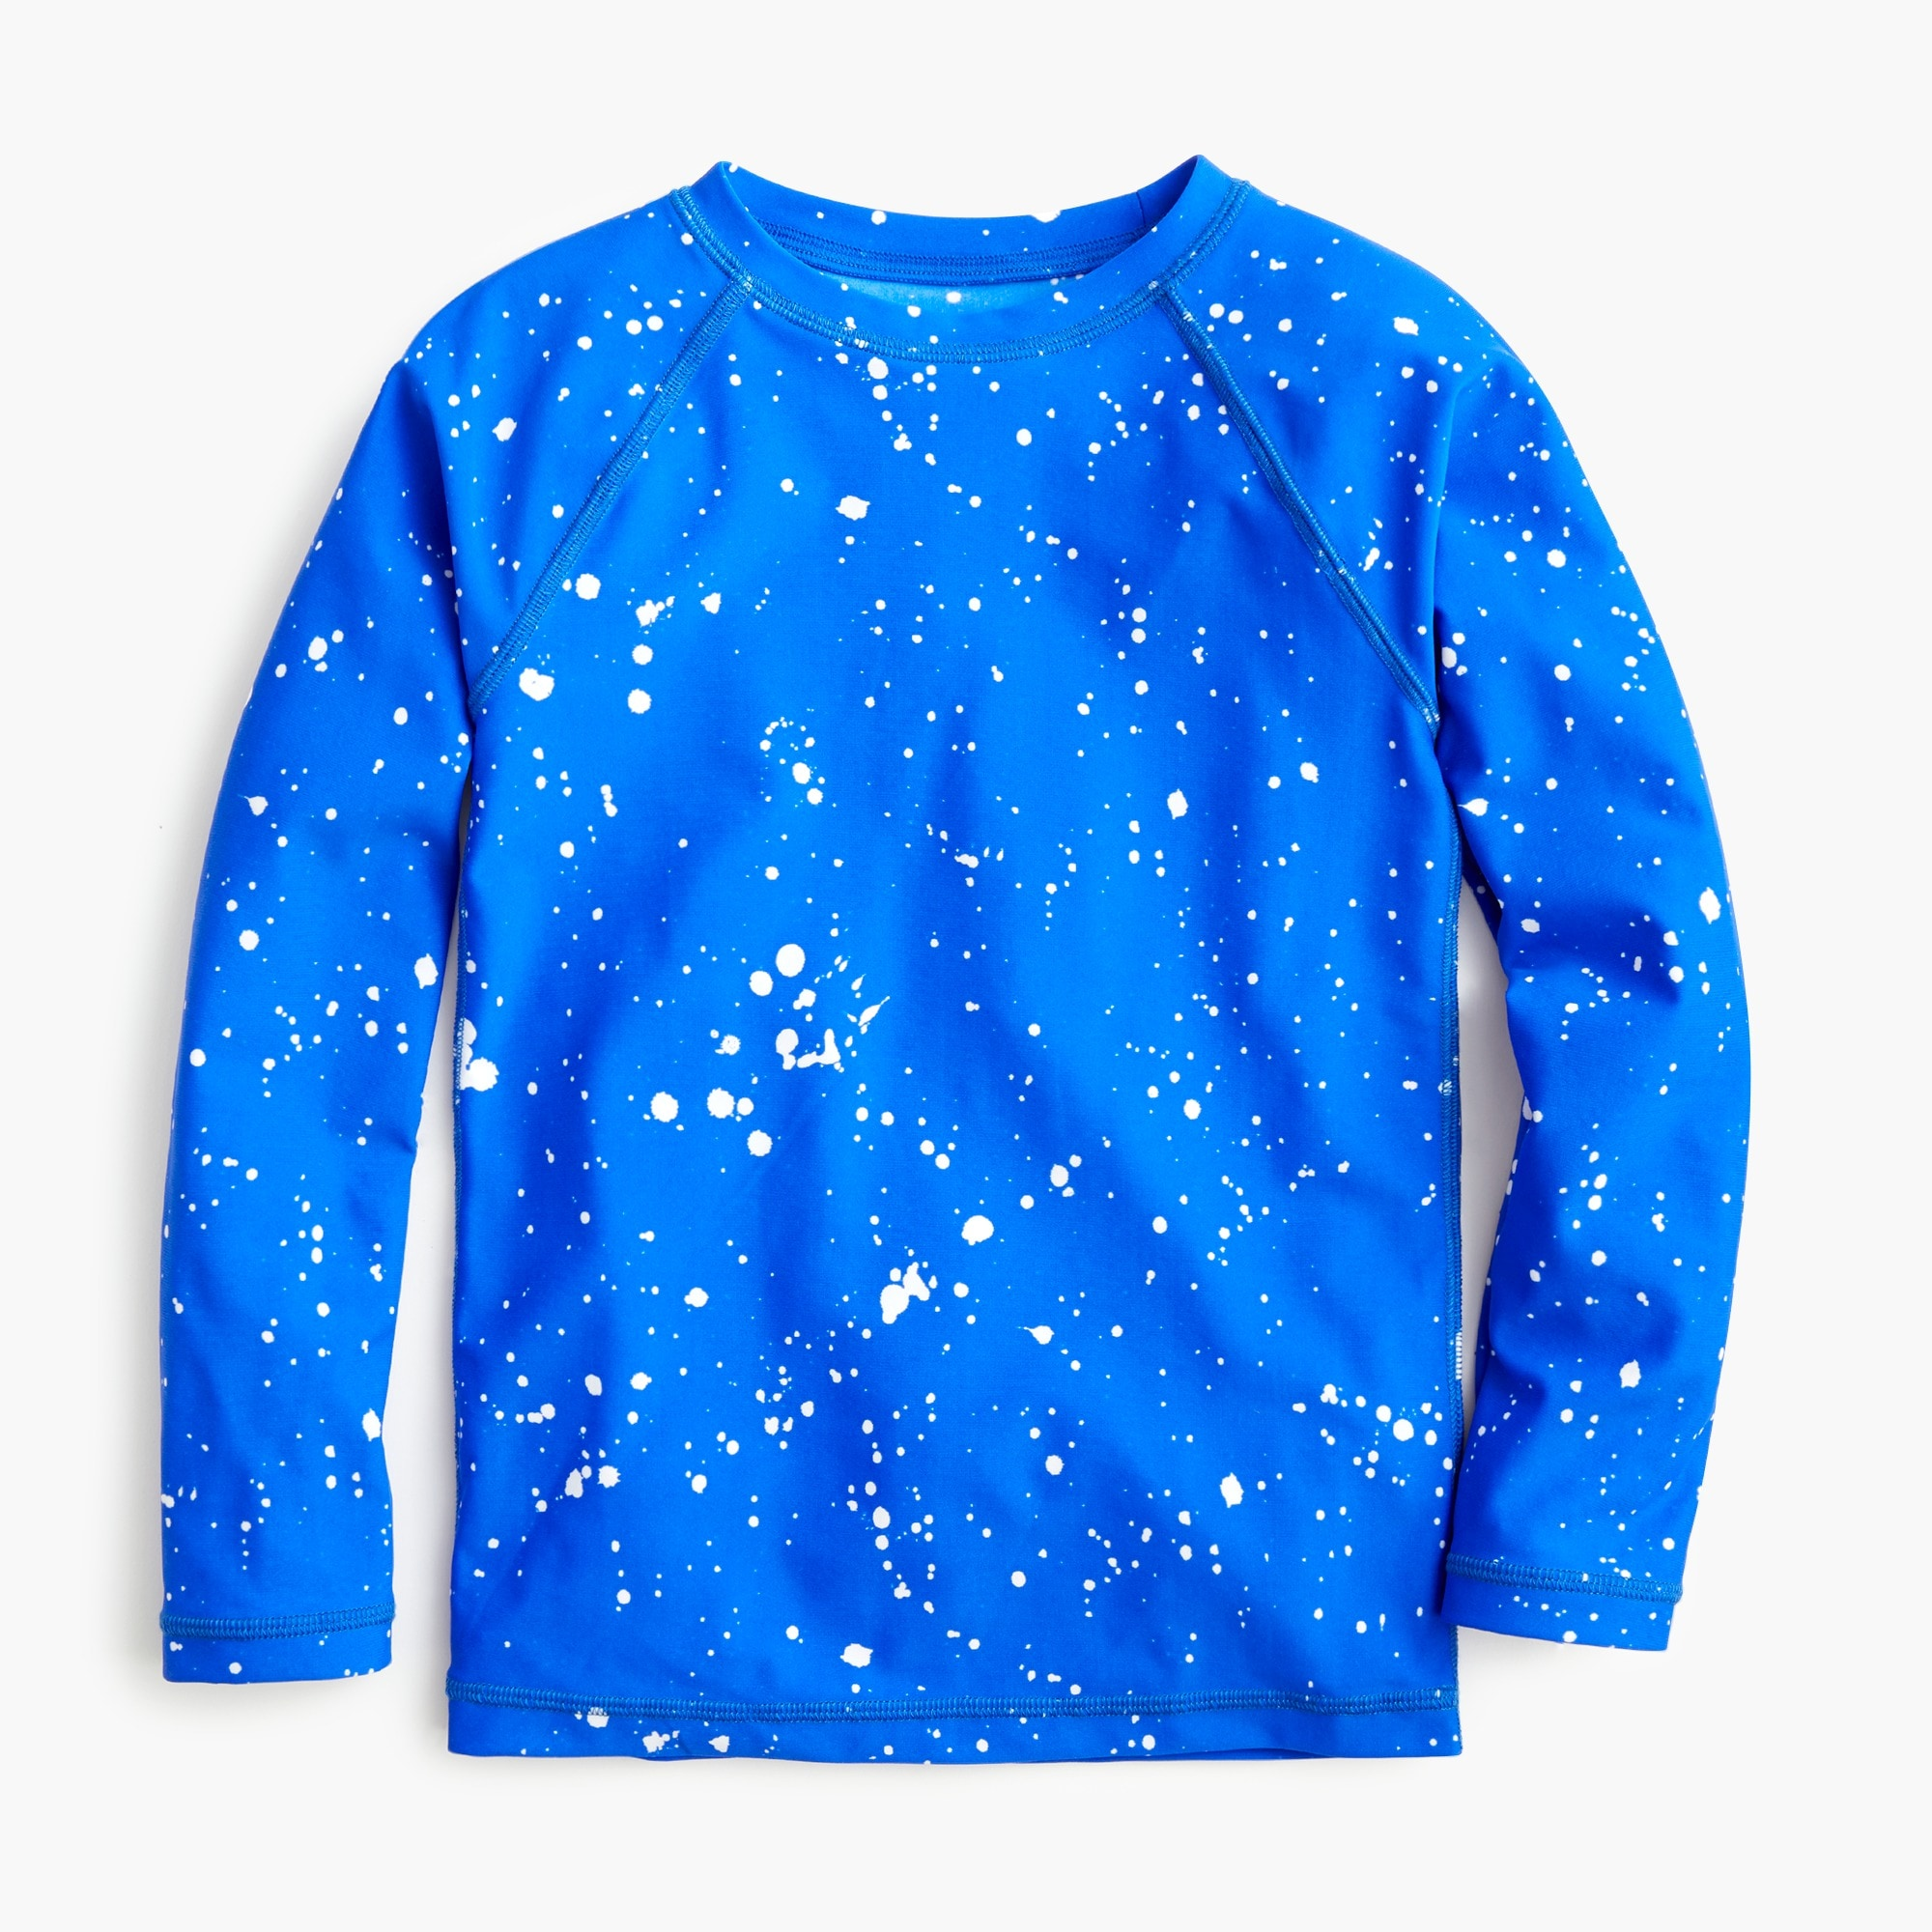 boys Boys' splatter-painted rash guard